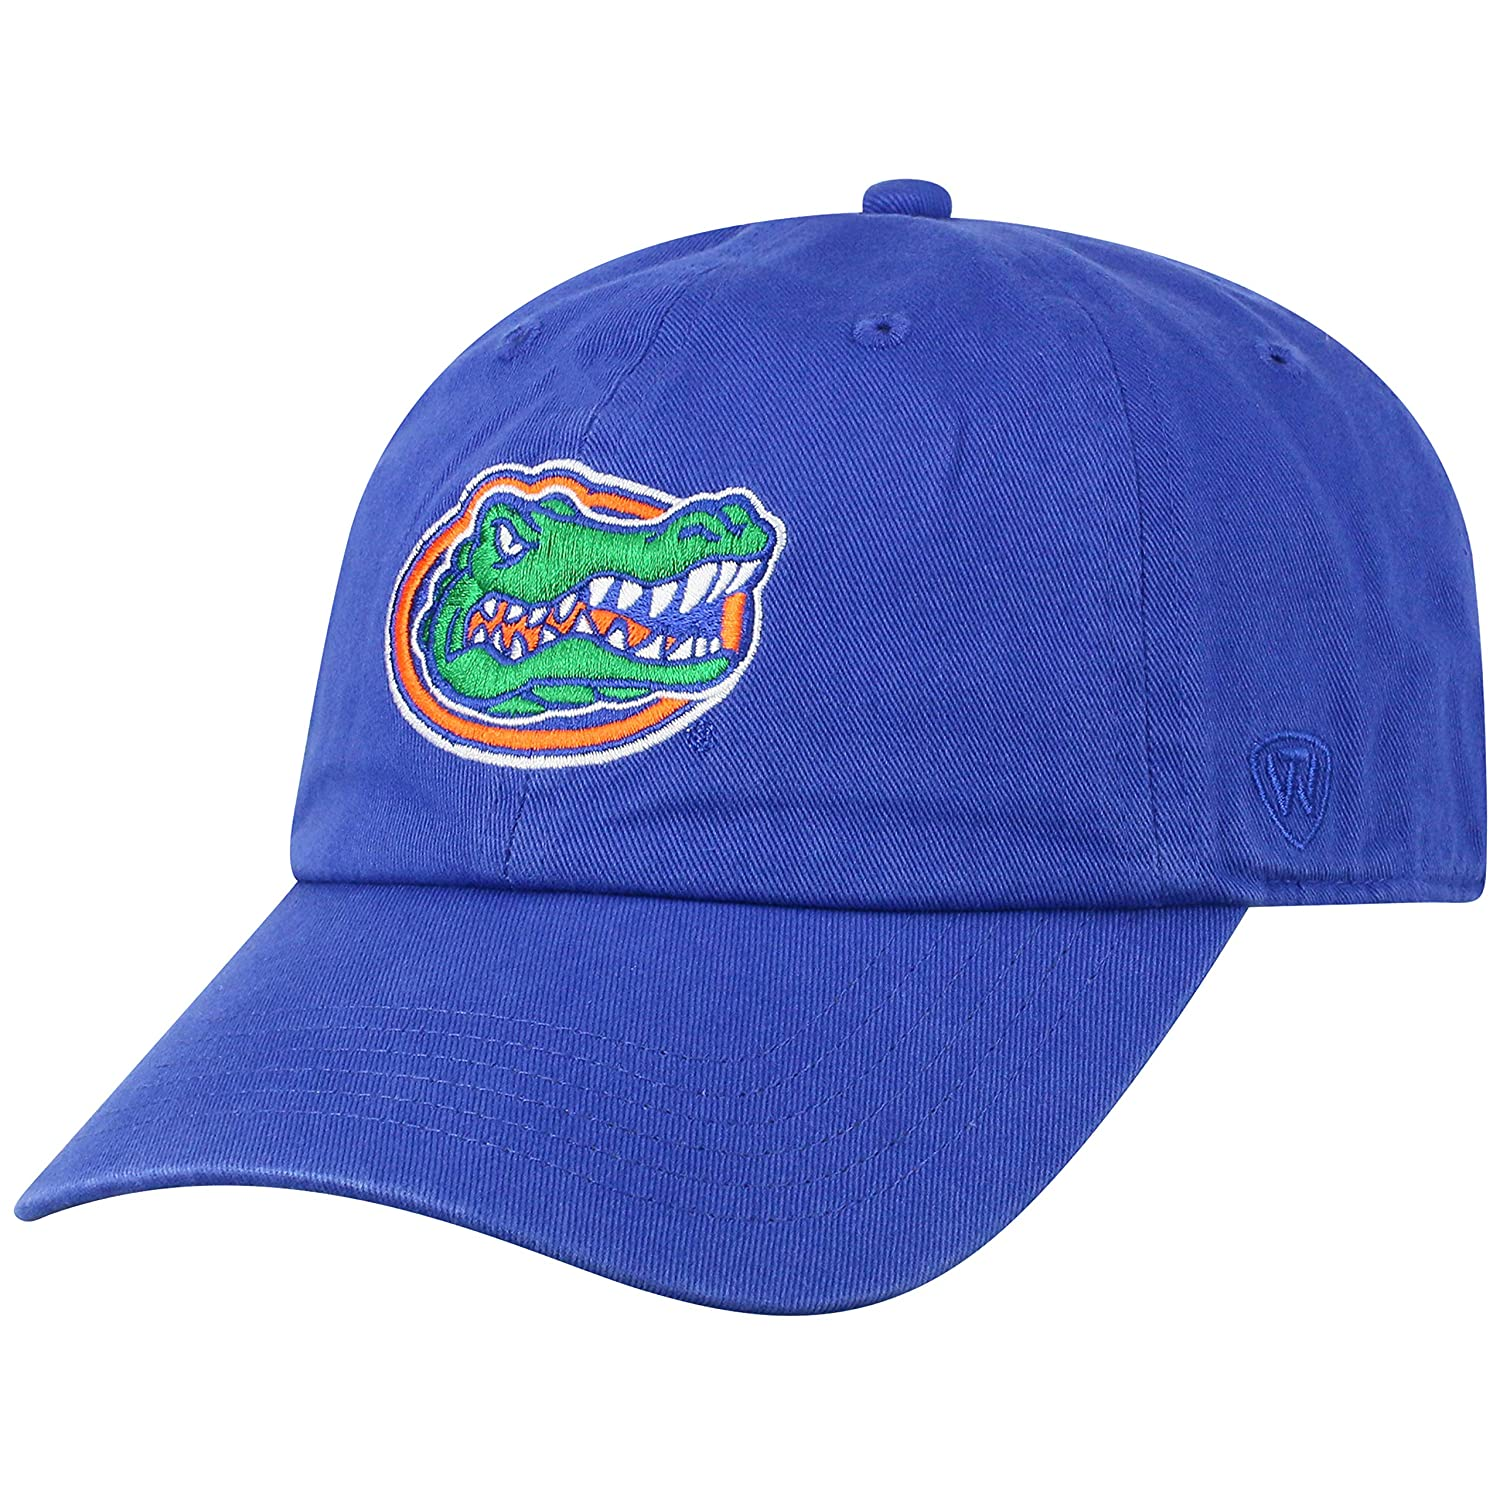 51fa0fbfa22c78 Amazon.com   Top of the World NCAA Florida Gators Men s Adjustable Relaxed  Fit Team Icon Hat